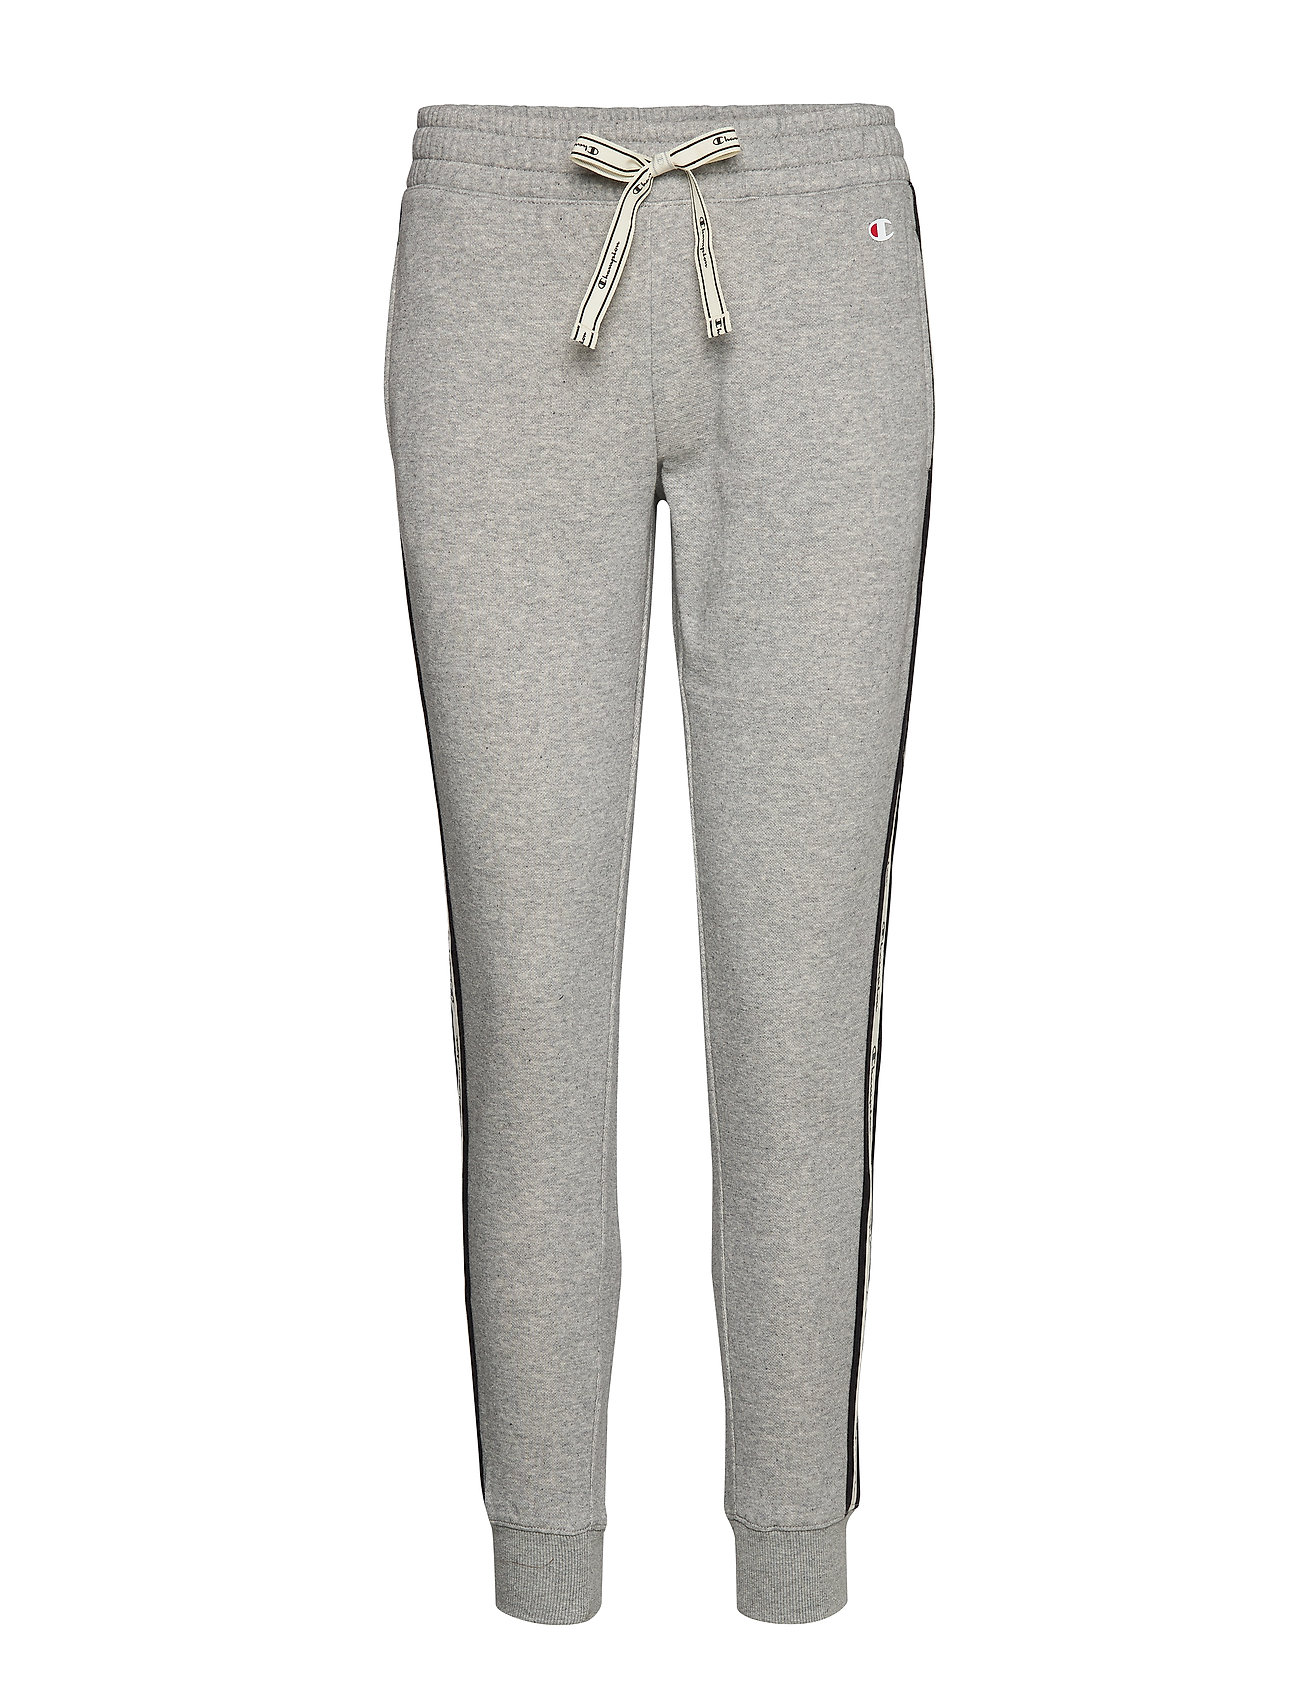 Champion Rib Cuff Pants - GRAY MELANGE LIGHT